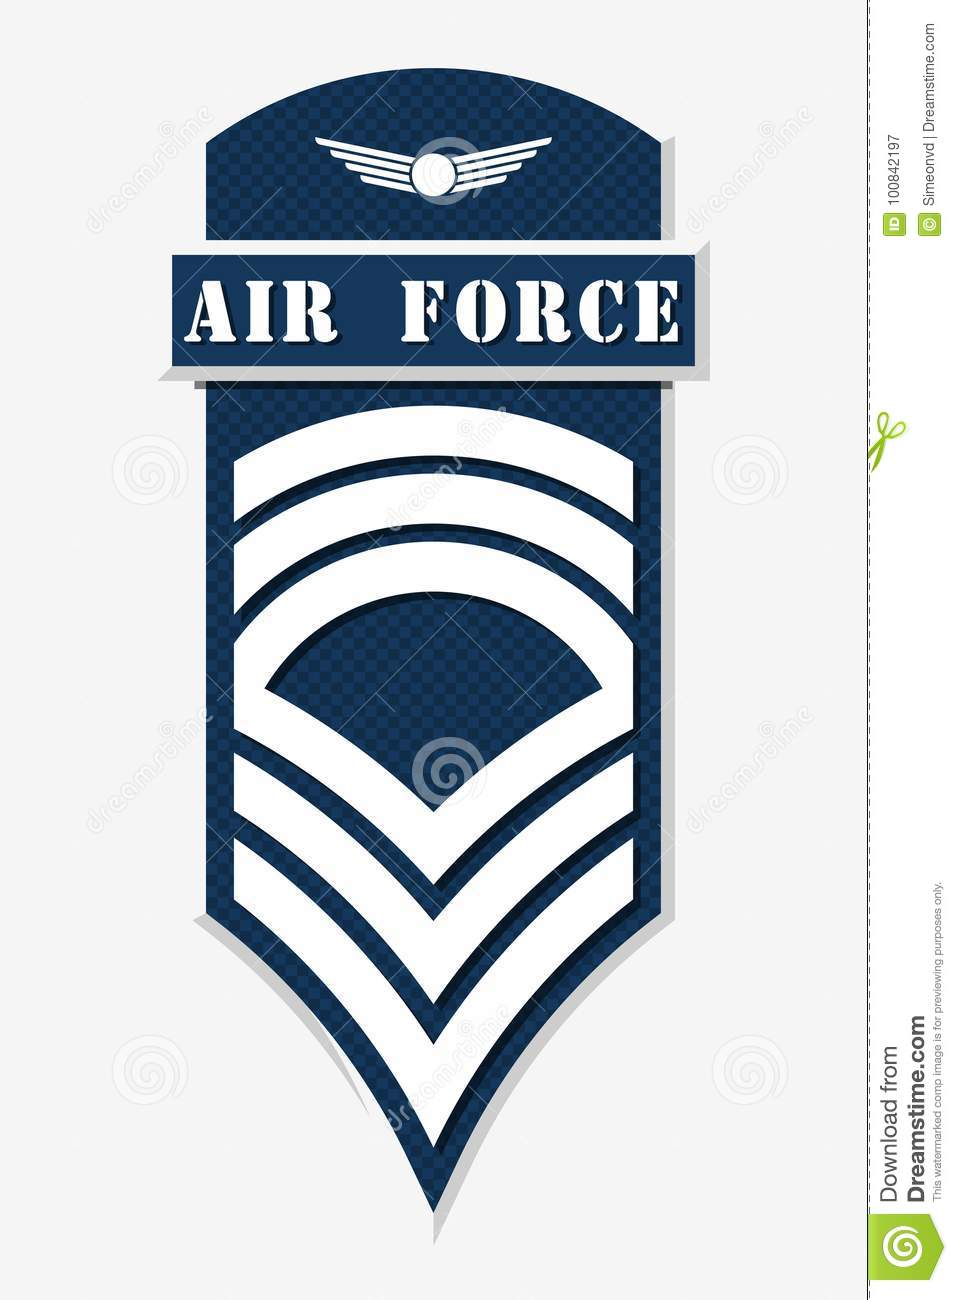 Air Force Master Sergeant Stripe Clipart Free Download